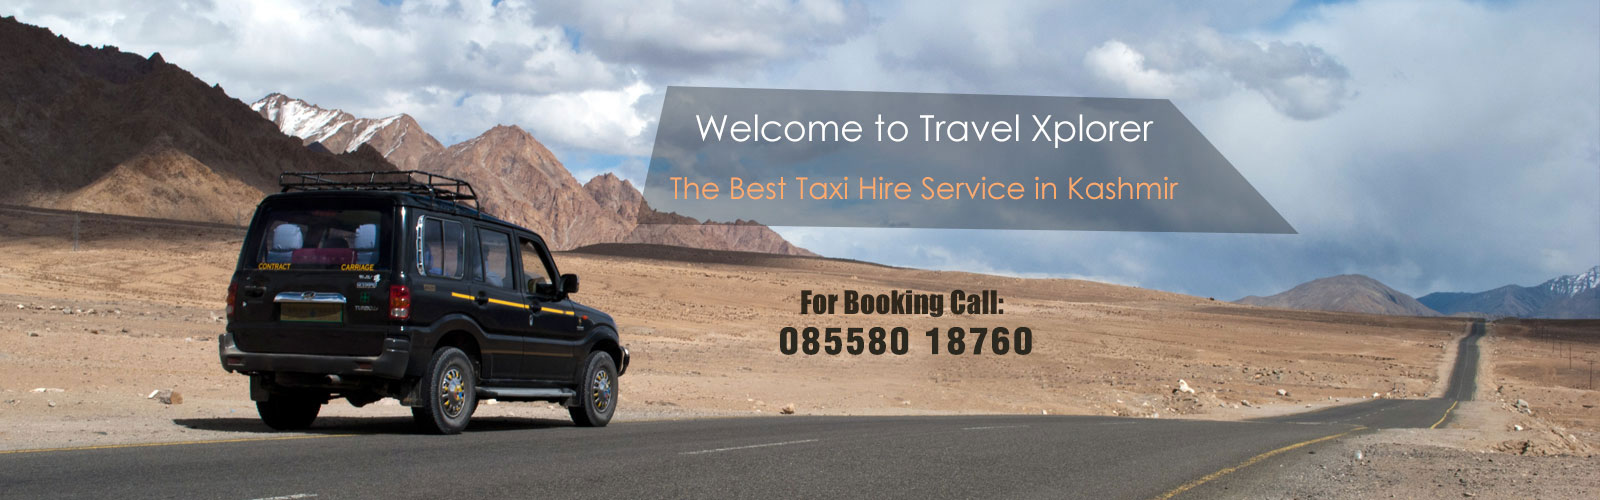 taxi hire service in kashmir